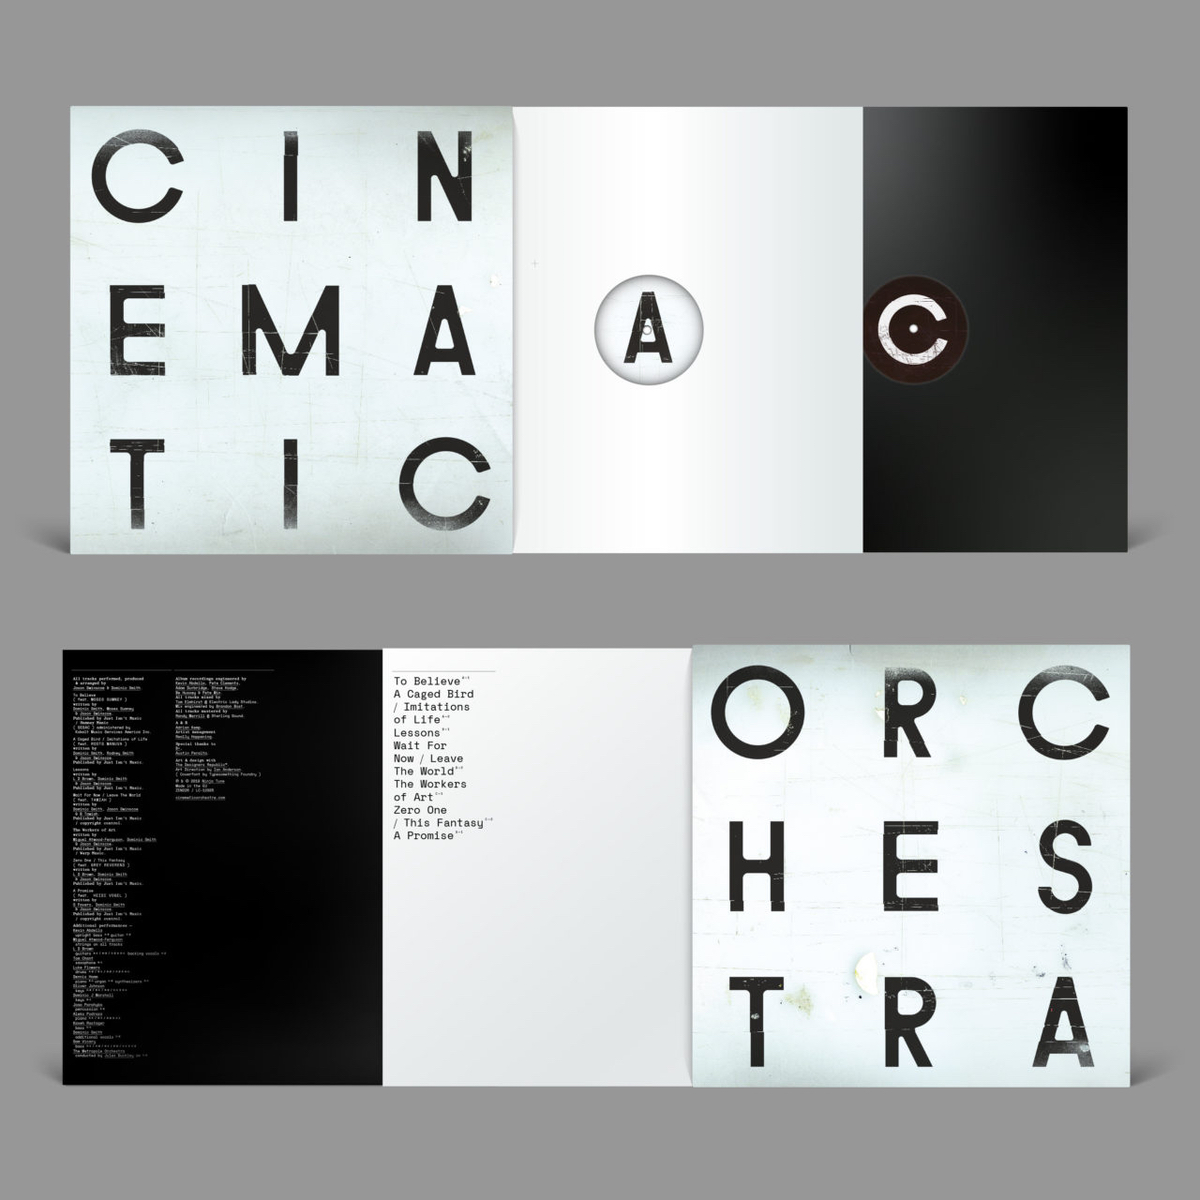 The Cinematic Orchestra To Believe